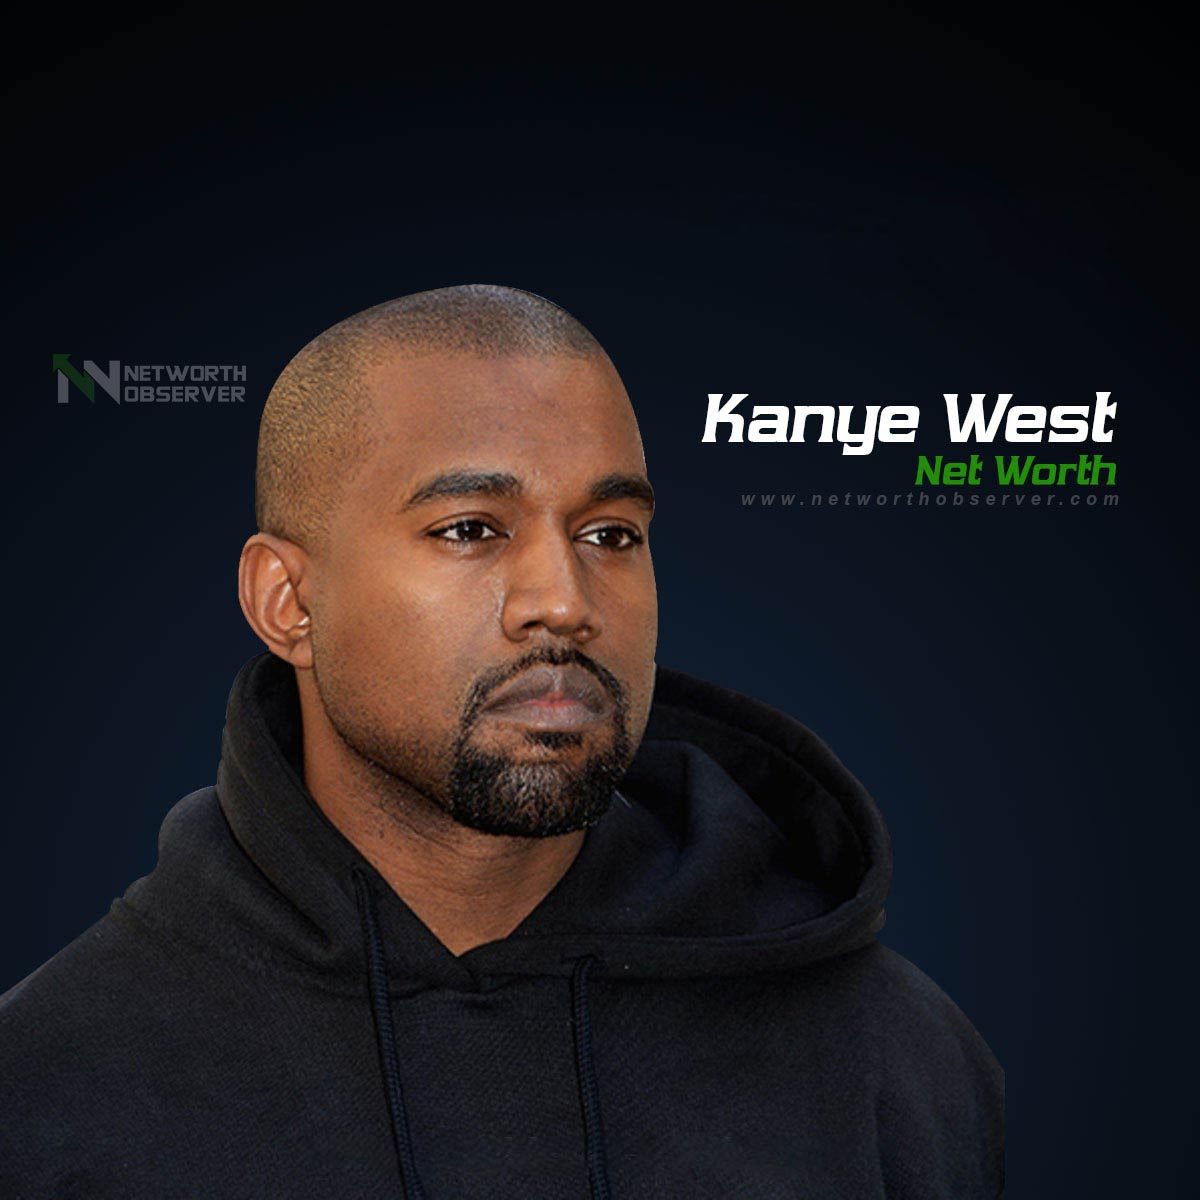 Photo of Kanye West Net Worth And His Biography